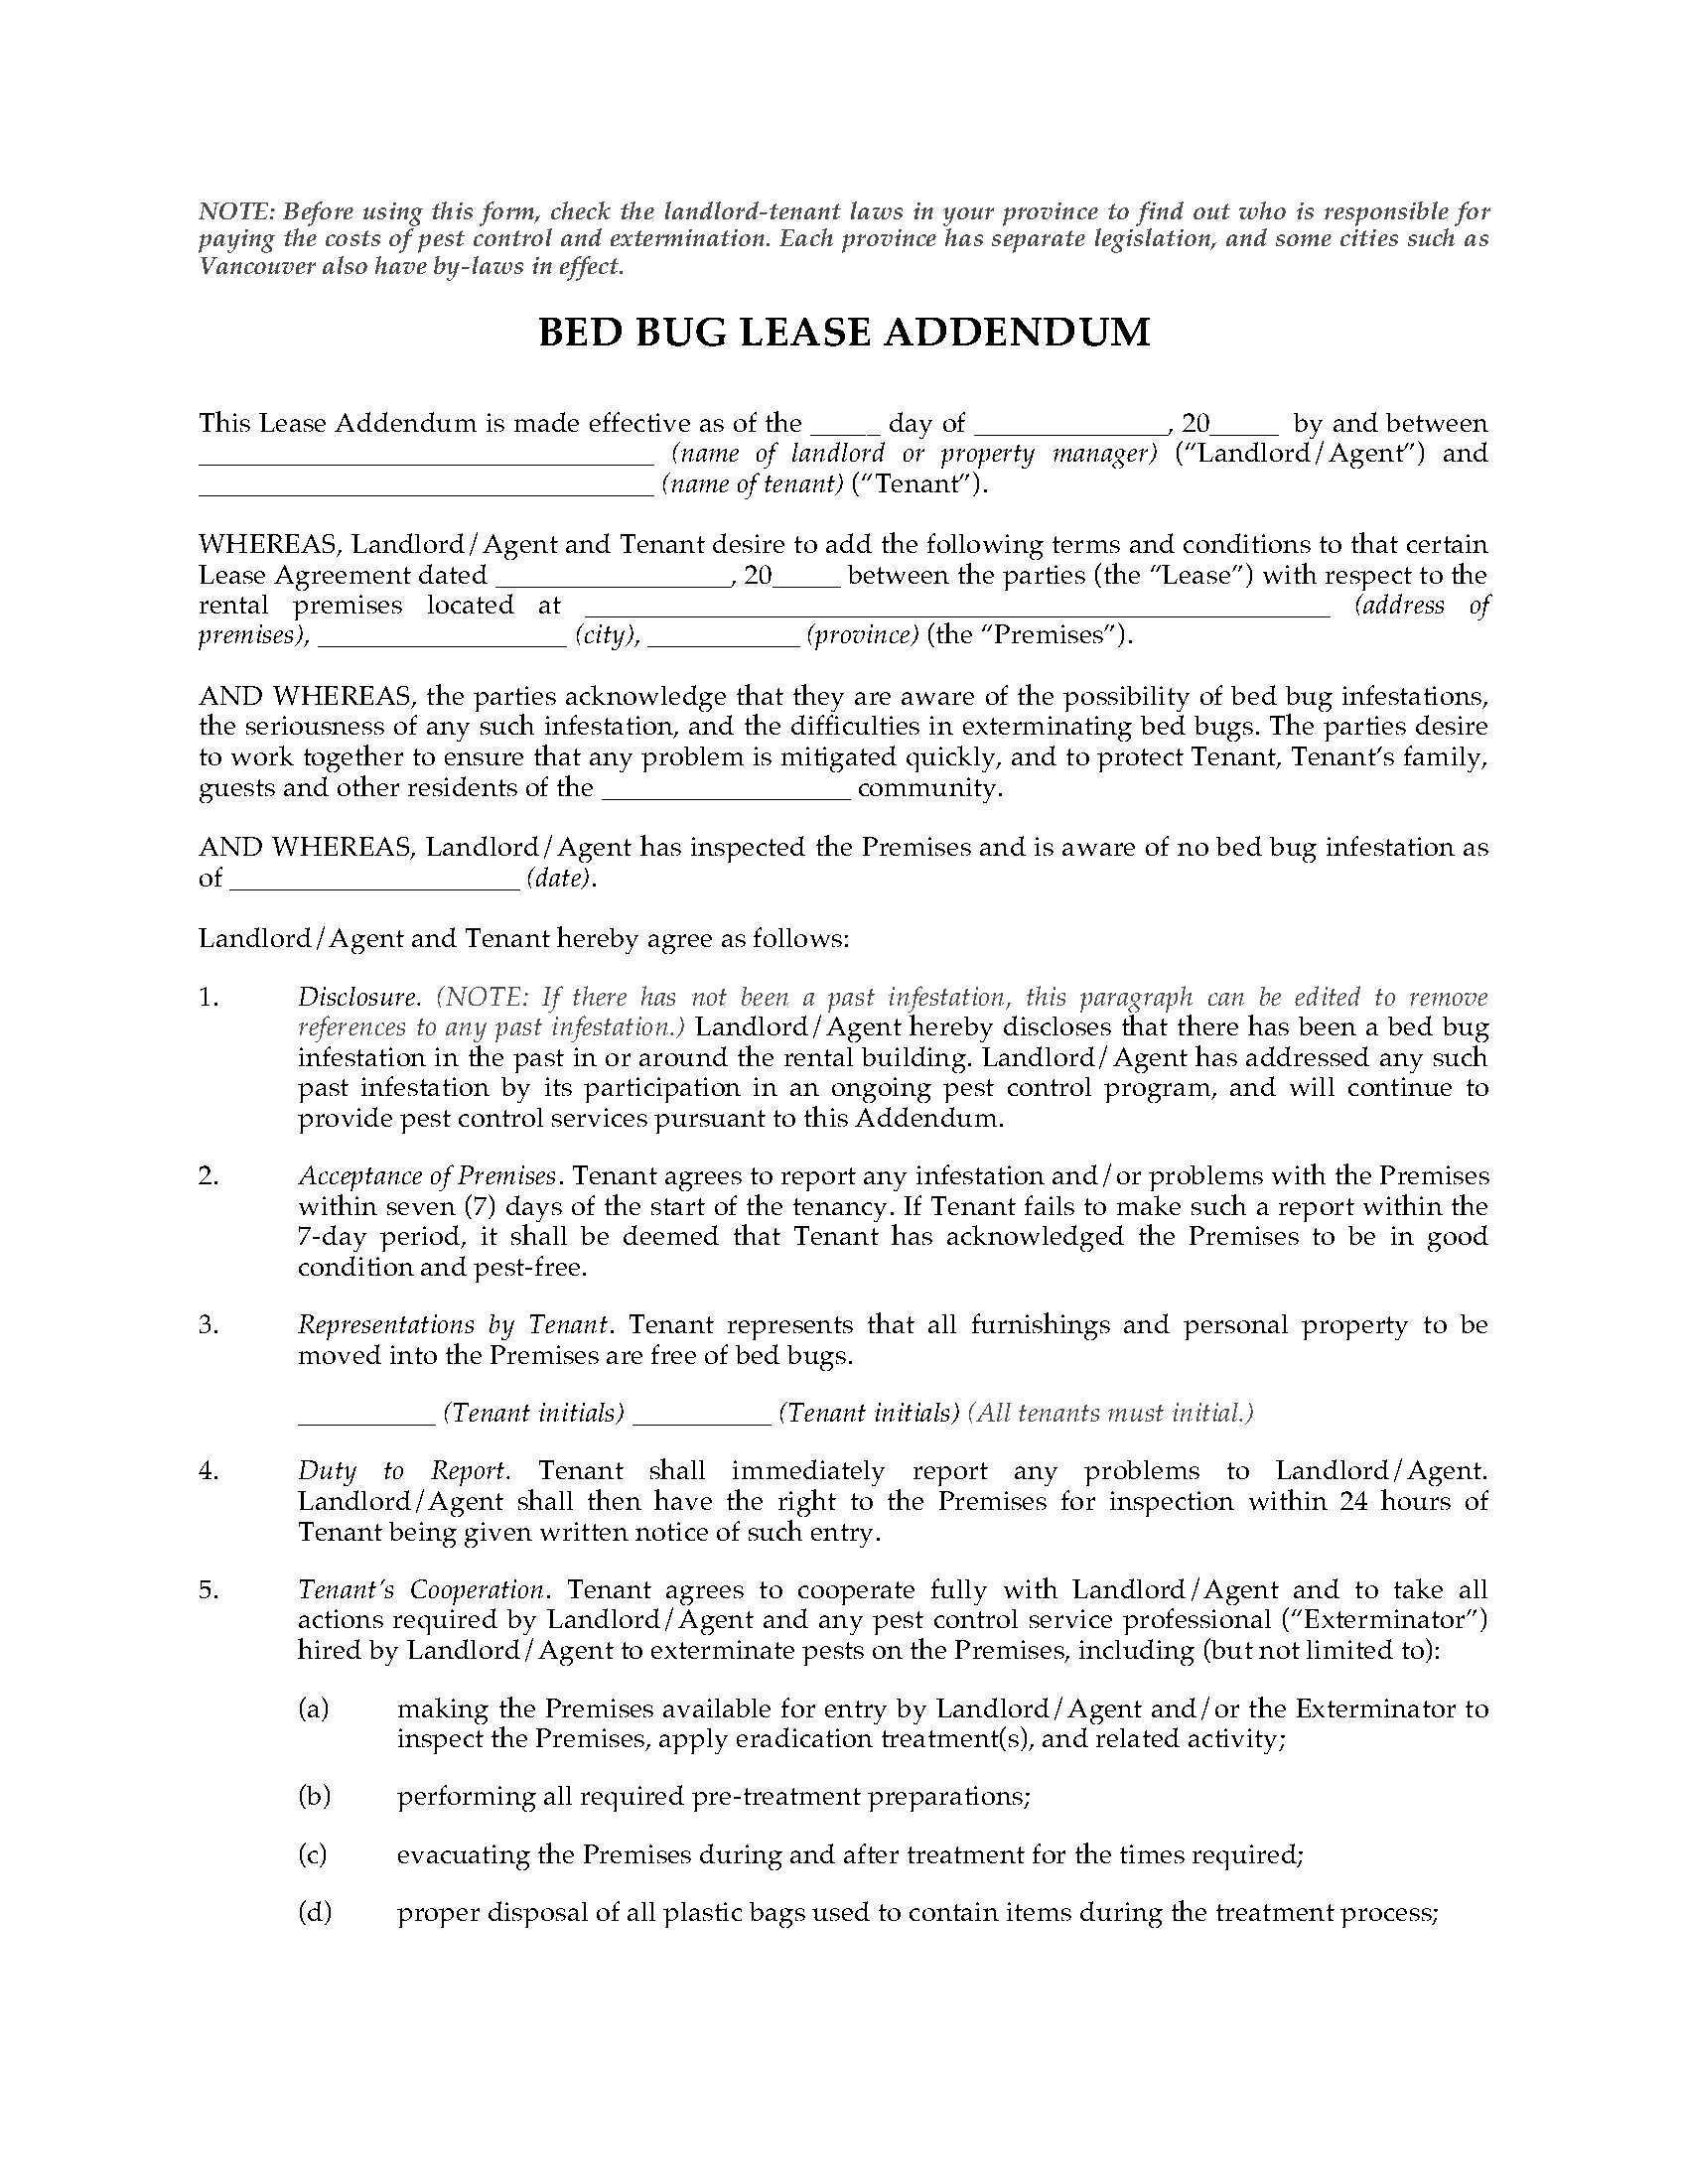 canada bed bug lease forms package | legal forms and business